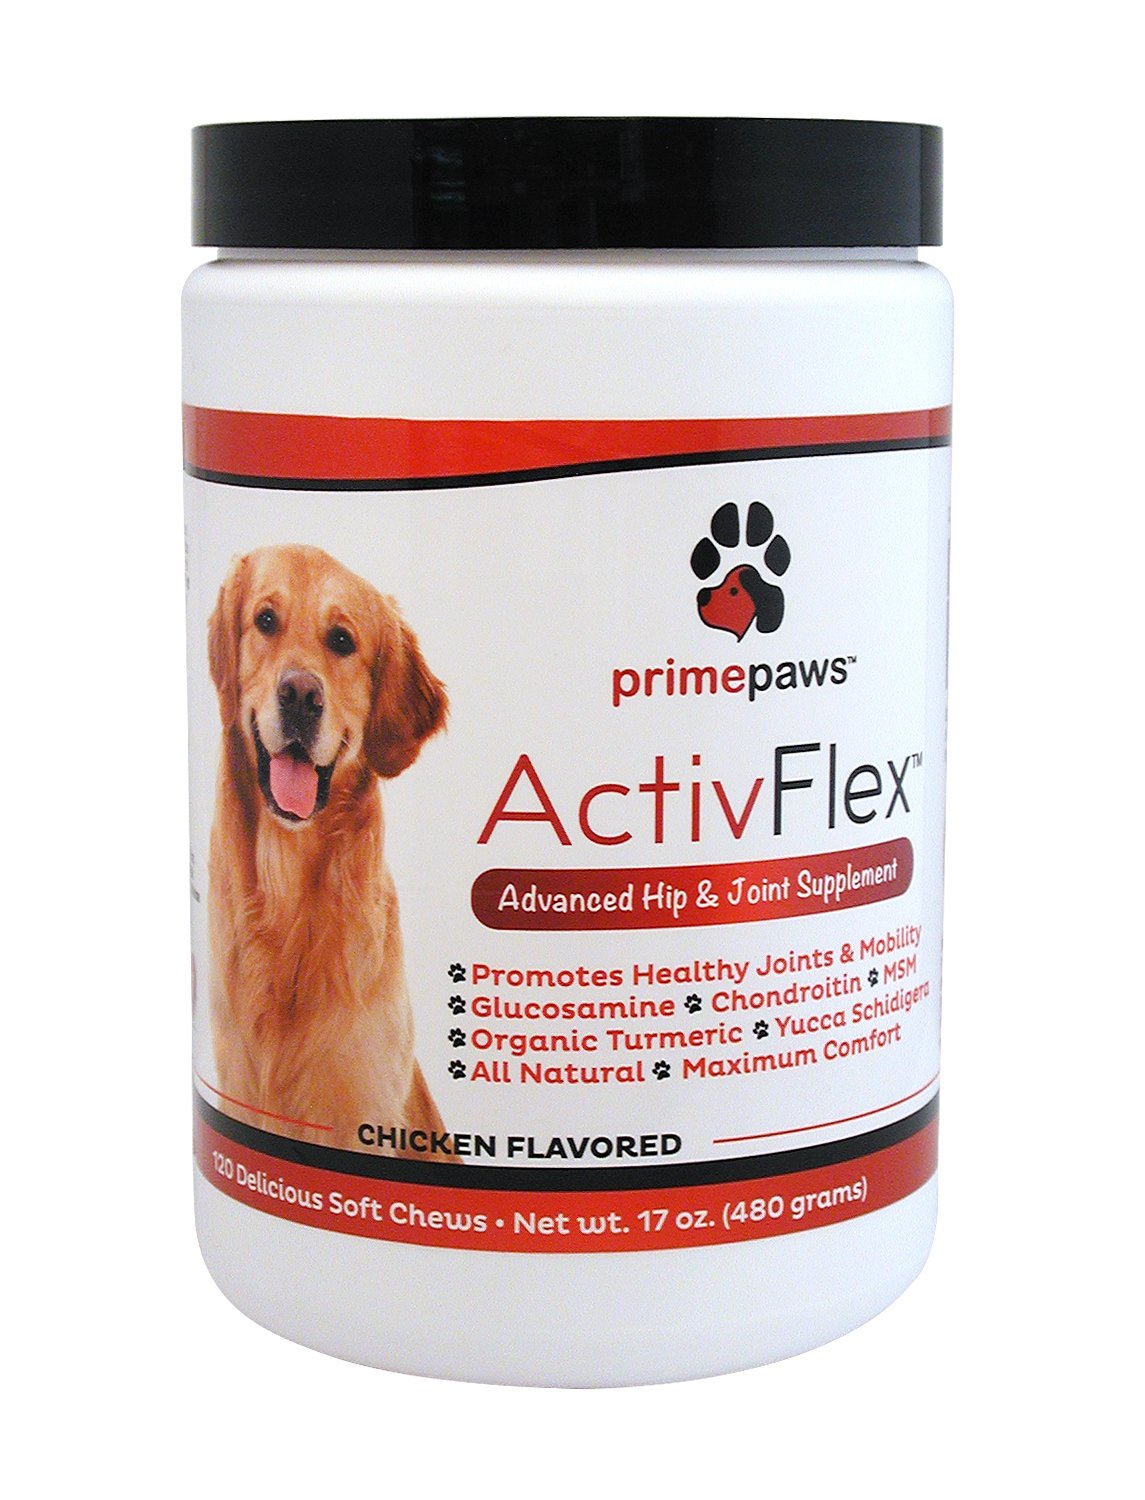 ActivFlex Glucosamine for Dogs Arthritis Pain Relief ~ All Natural Advanced Hip + Joint Supplement ~ Chondroitin, MSM, Organic Turmeric ~ Improves Pet Mobility ~ 120 Soft Chew Dog Treats ~ Made in USA